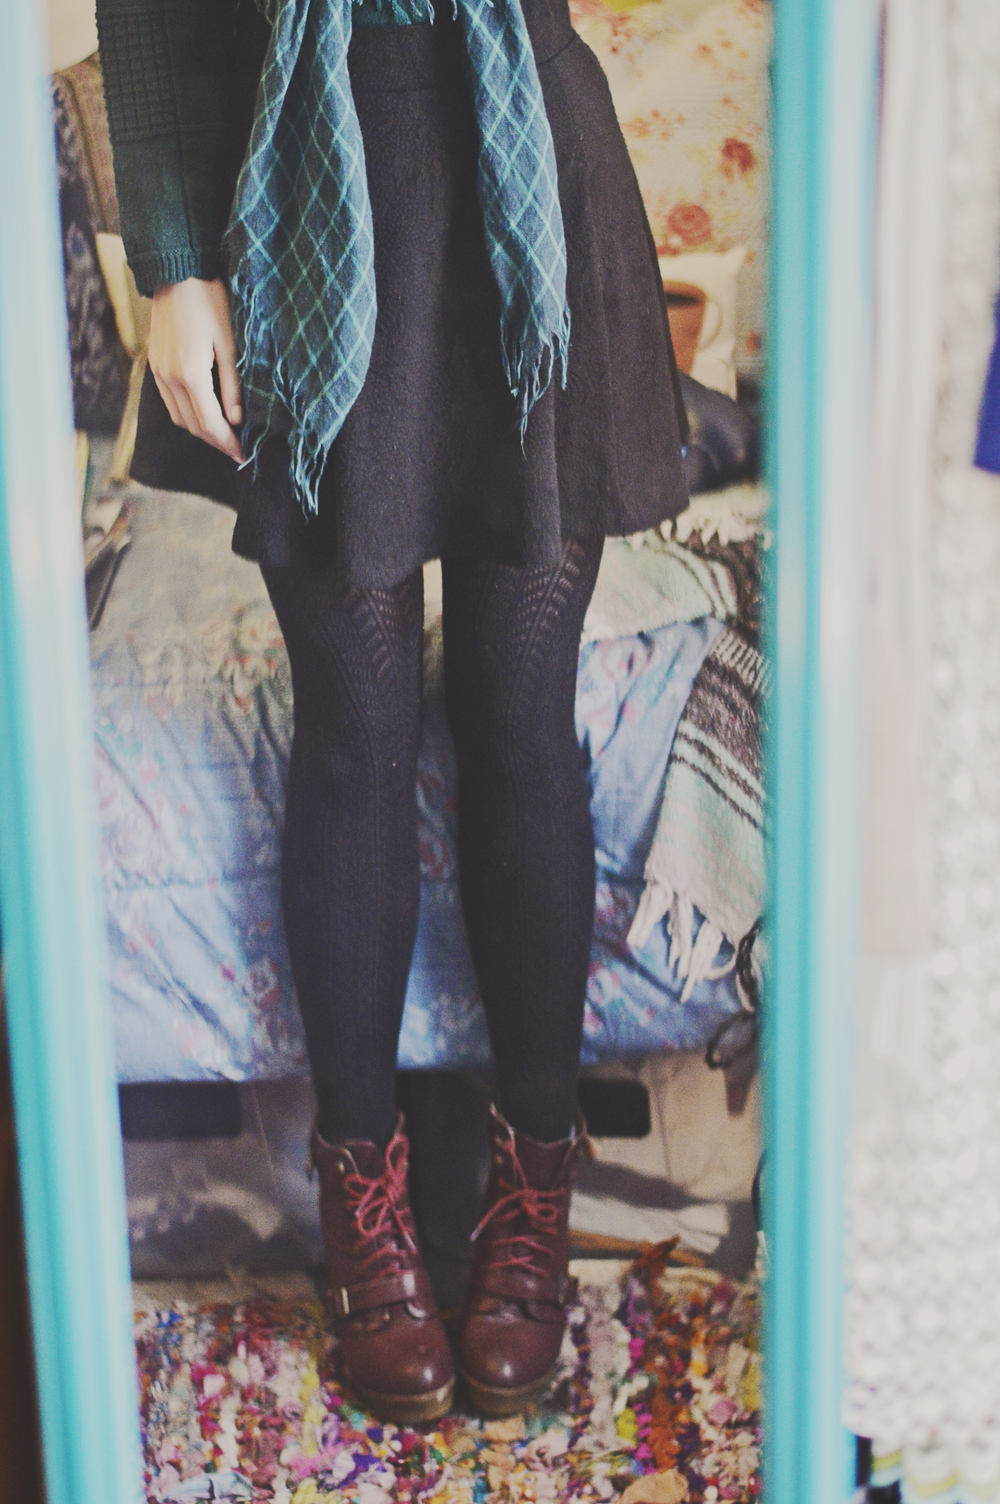 sweater: Goodwill / scarf: Goodwill / skirt: Forever 21 sale / boots: Goodwill $10 (Forever 21)